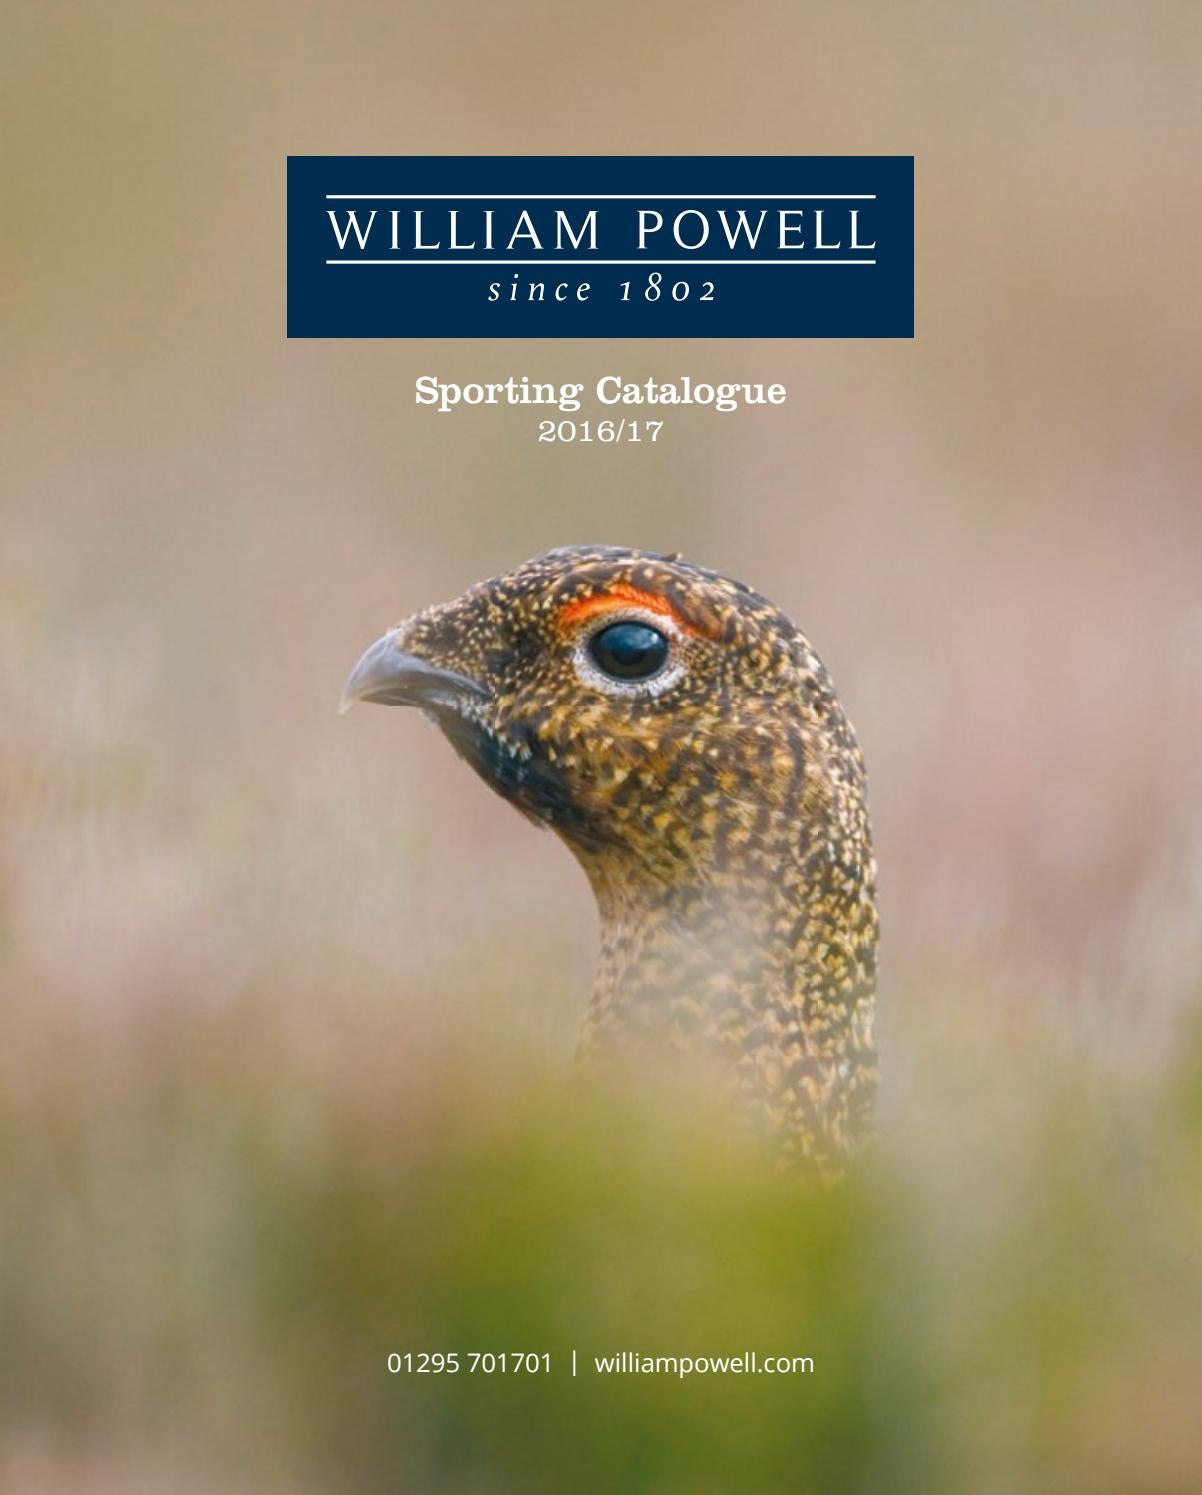 df42c0171ea William Powell Sporting Catalogue - 2016 17 by William Powell - issuu